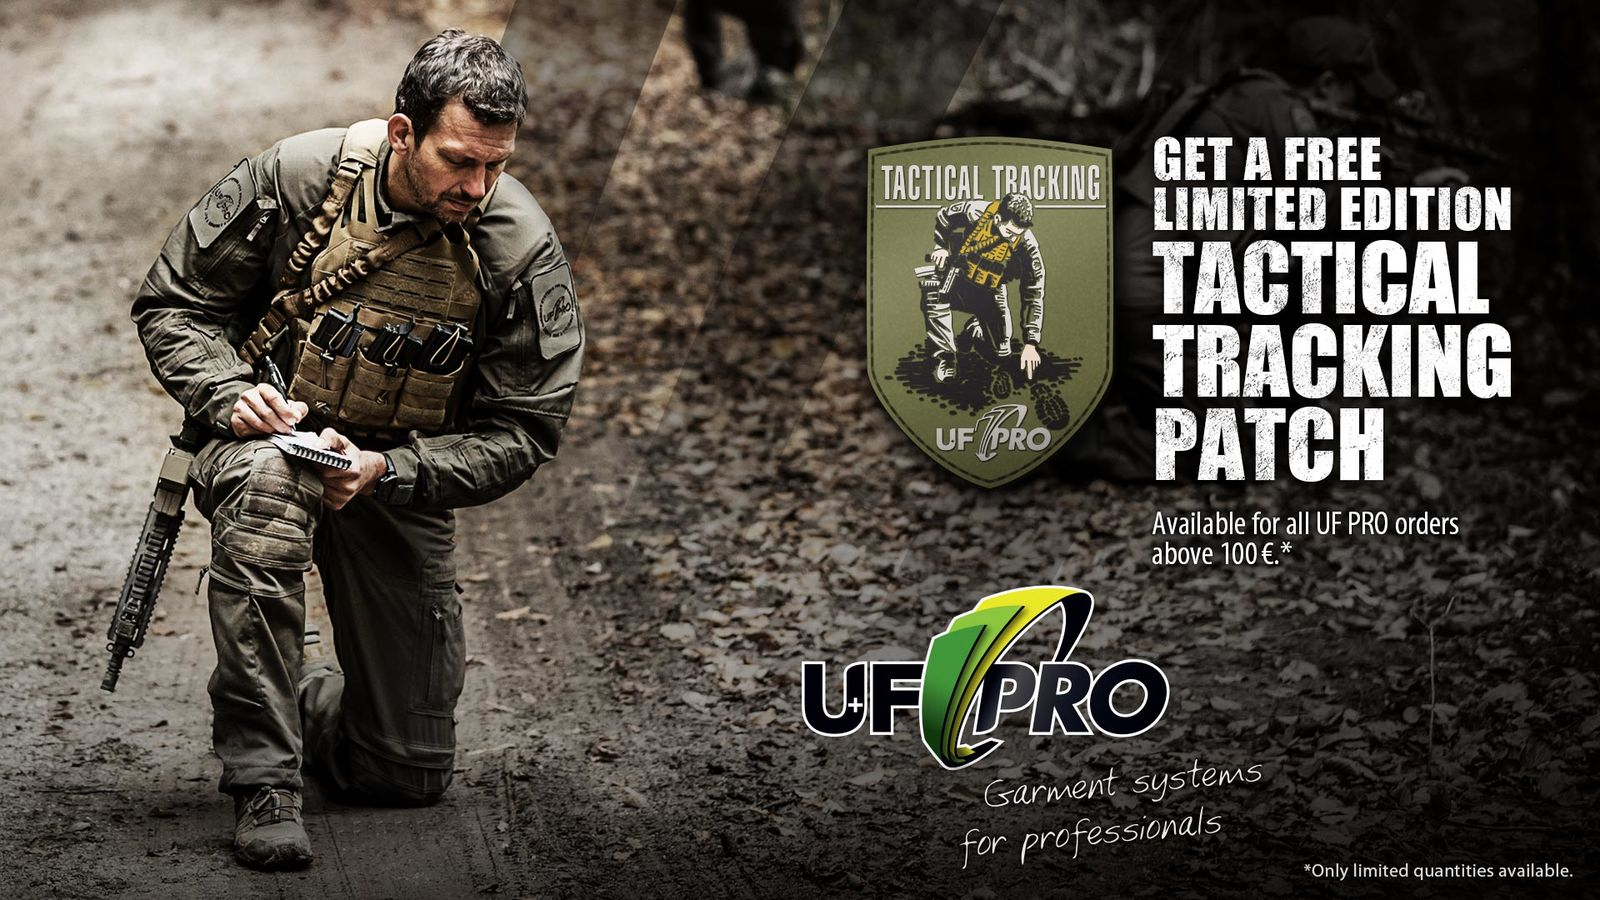 ufpro-tactical-tracking-patch-1920x1080-medium.jpg